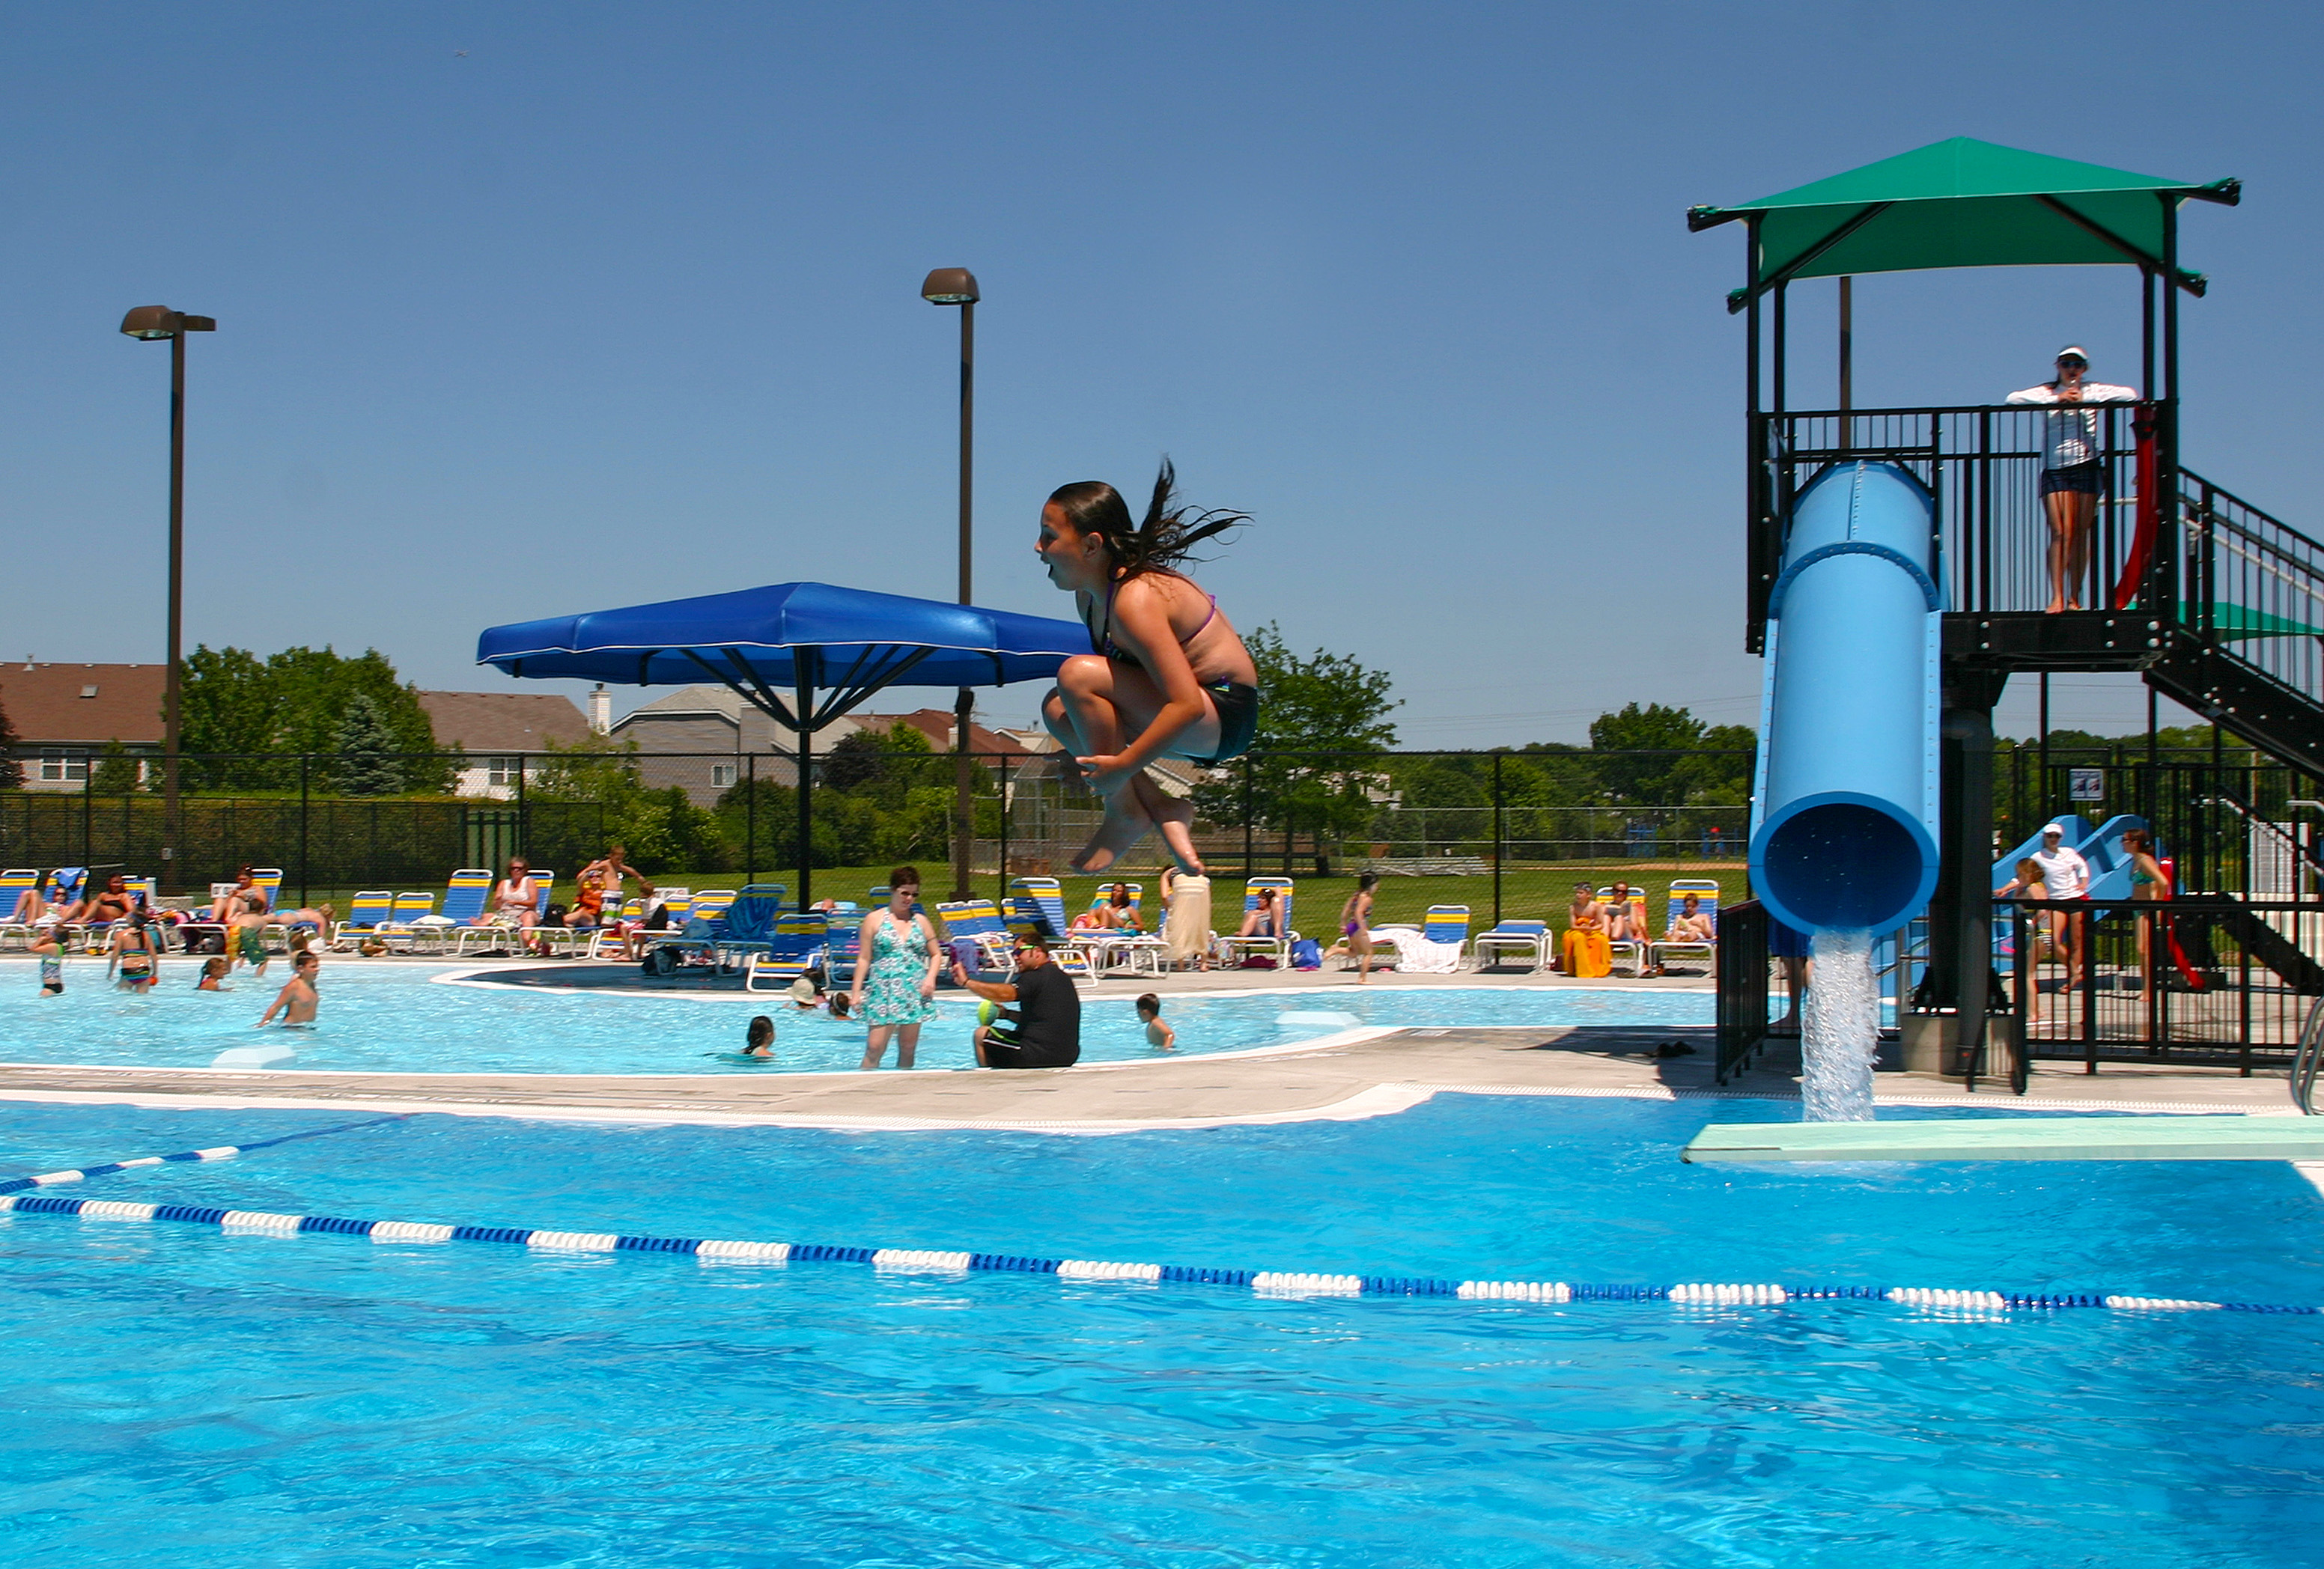 Public Swimming Pools With Diving Boards chippewa pool - des plaines park district